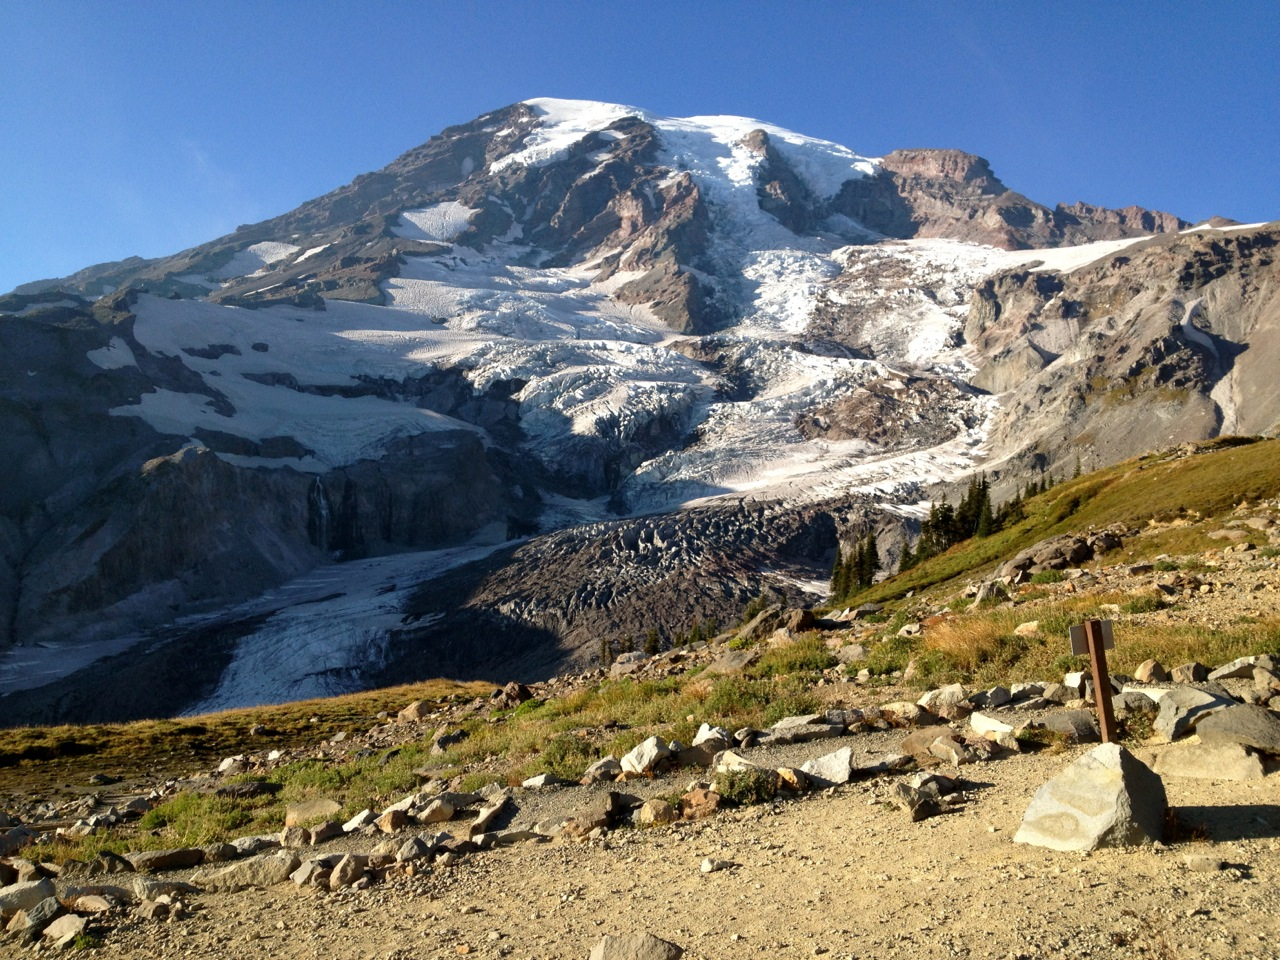 View of Nisqually Glacier at Glacier Vista near Paradise in Mount Rainier National Park.